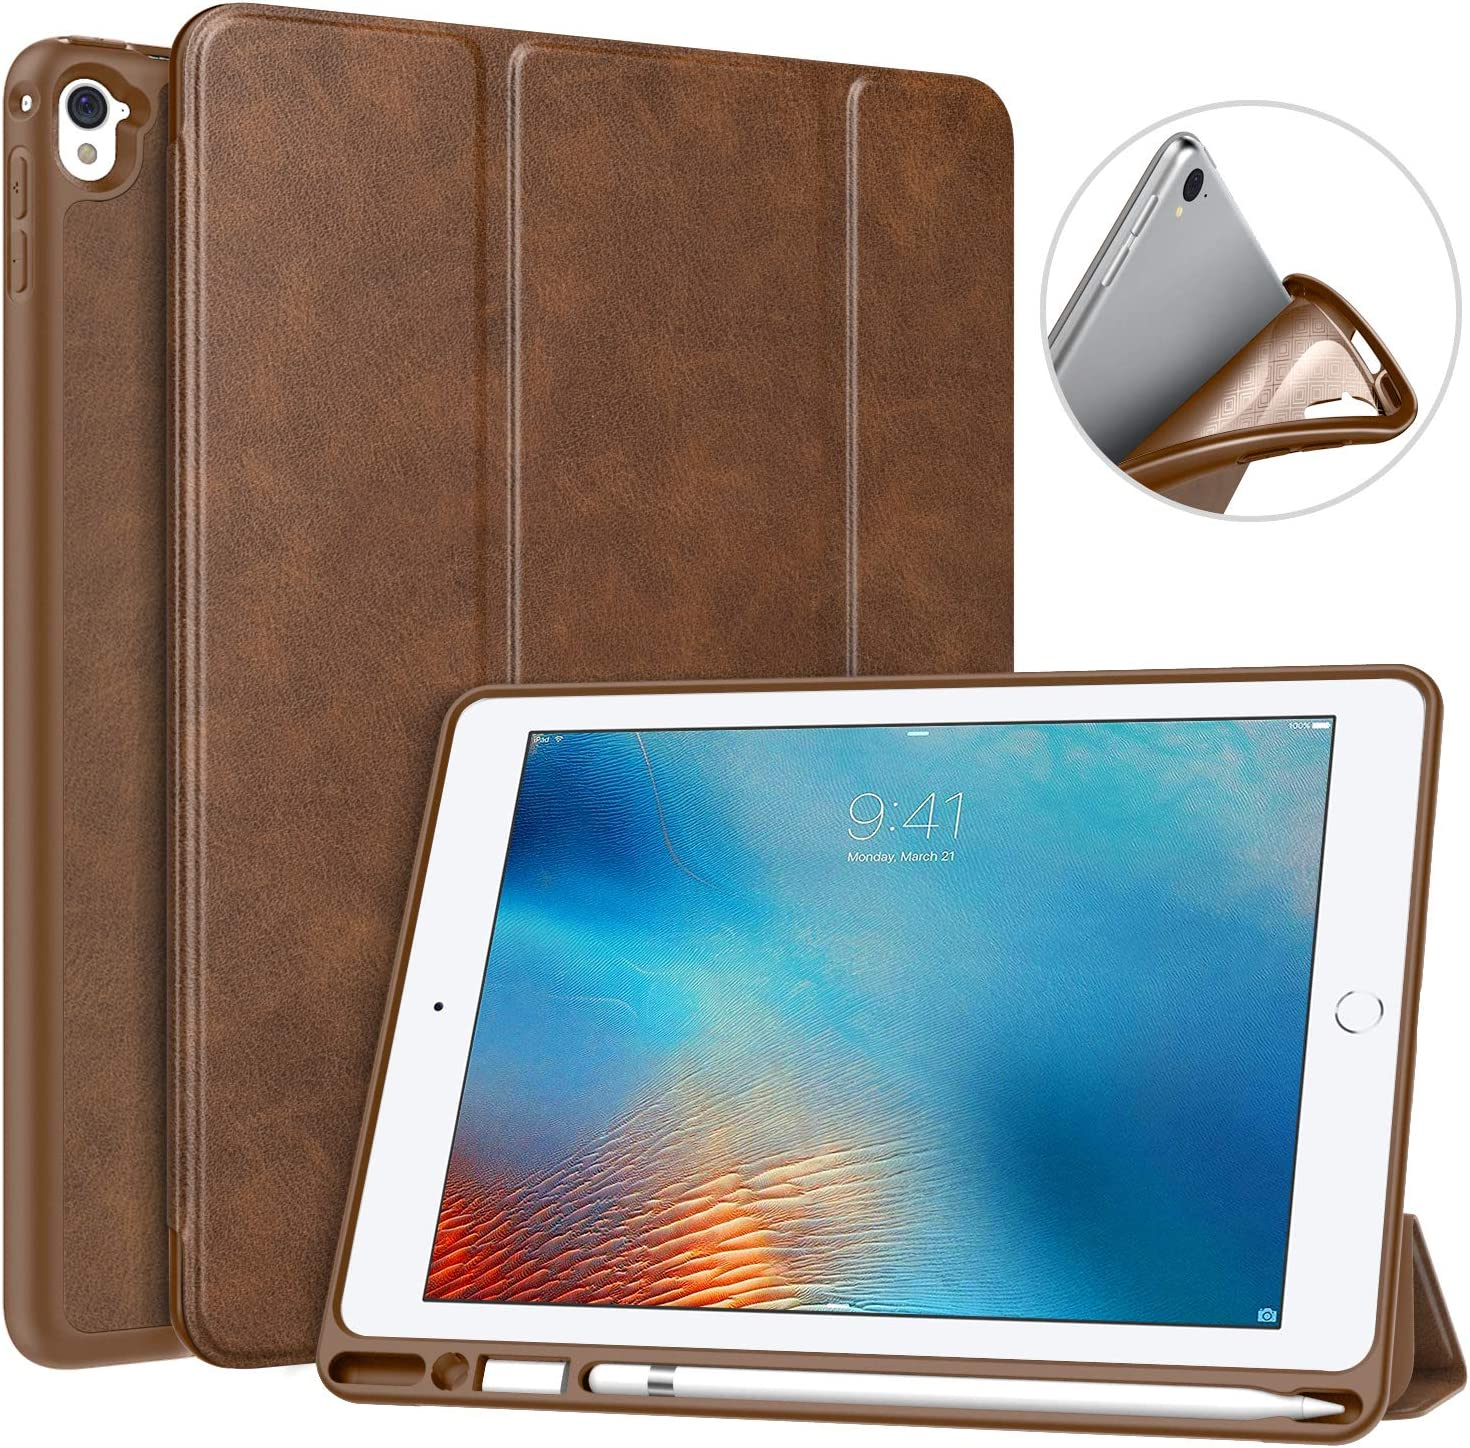 MoKo Case Fit iPad Pro 9.7 with Pencil Holder - Slim Lightweight Smart Shell Stand Cover Case with Auto Wake/Sleep Fit iPad Pro 9.7 Inch 2016 Tablet, Brown